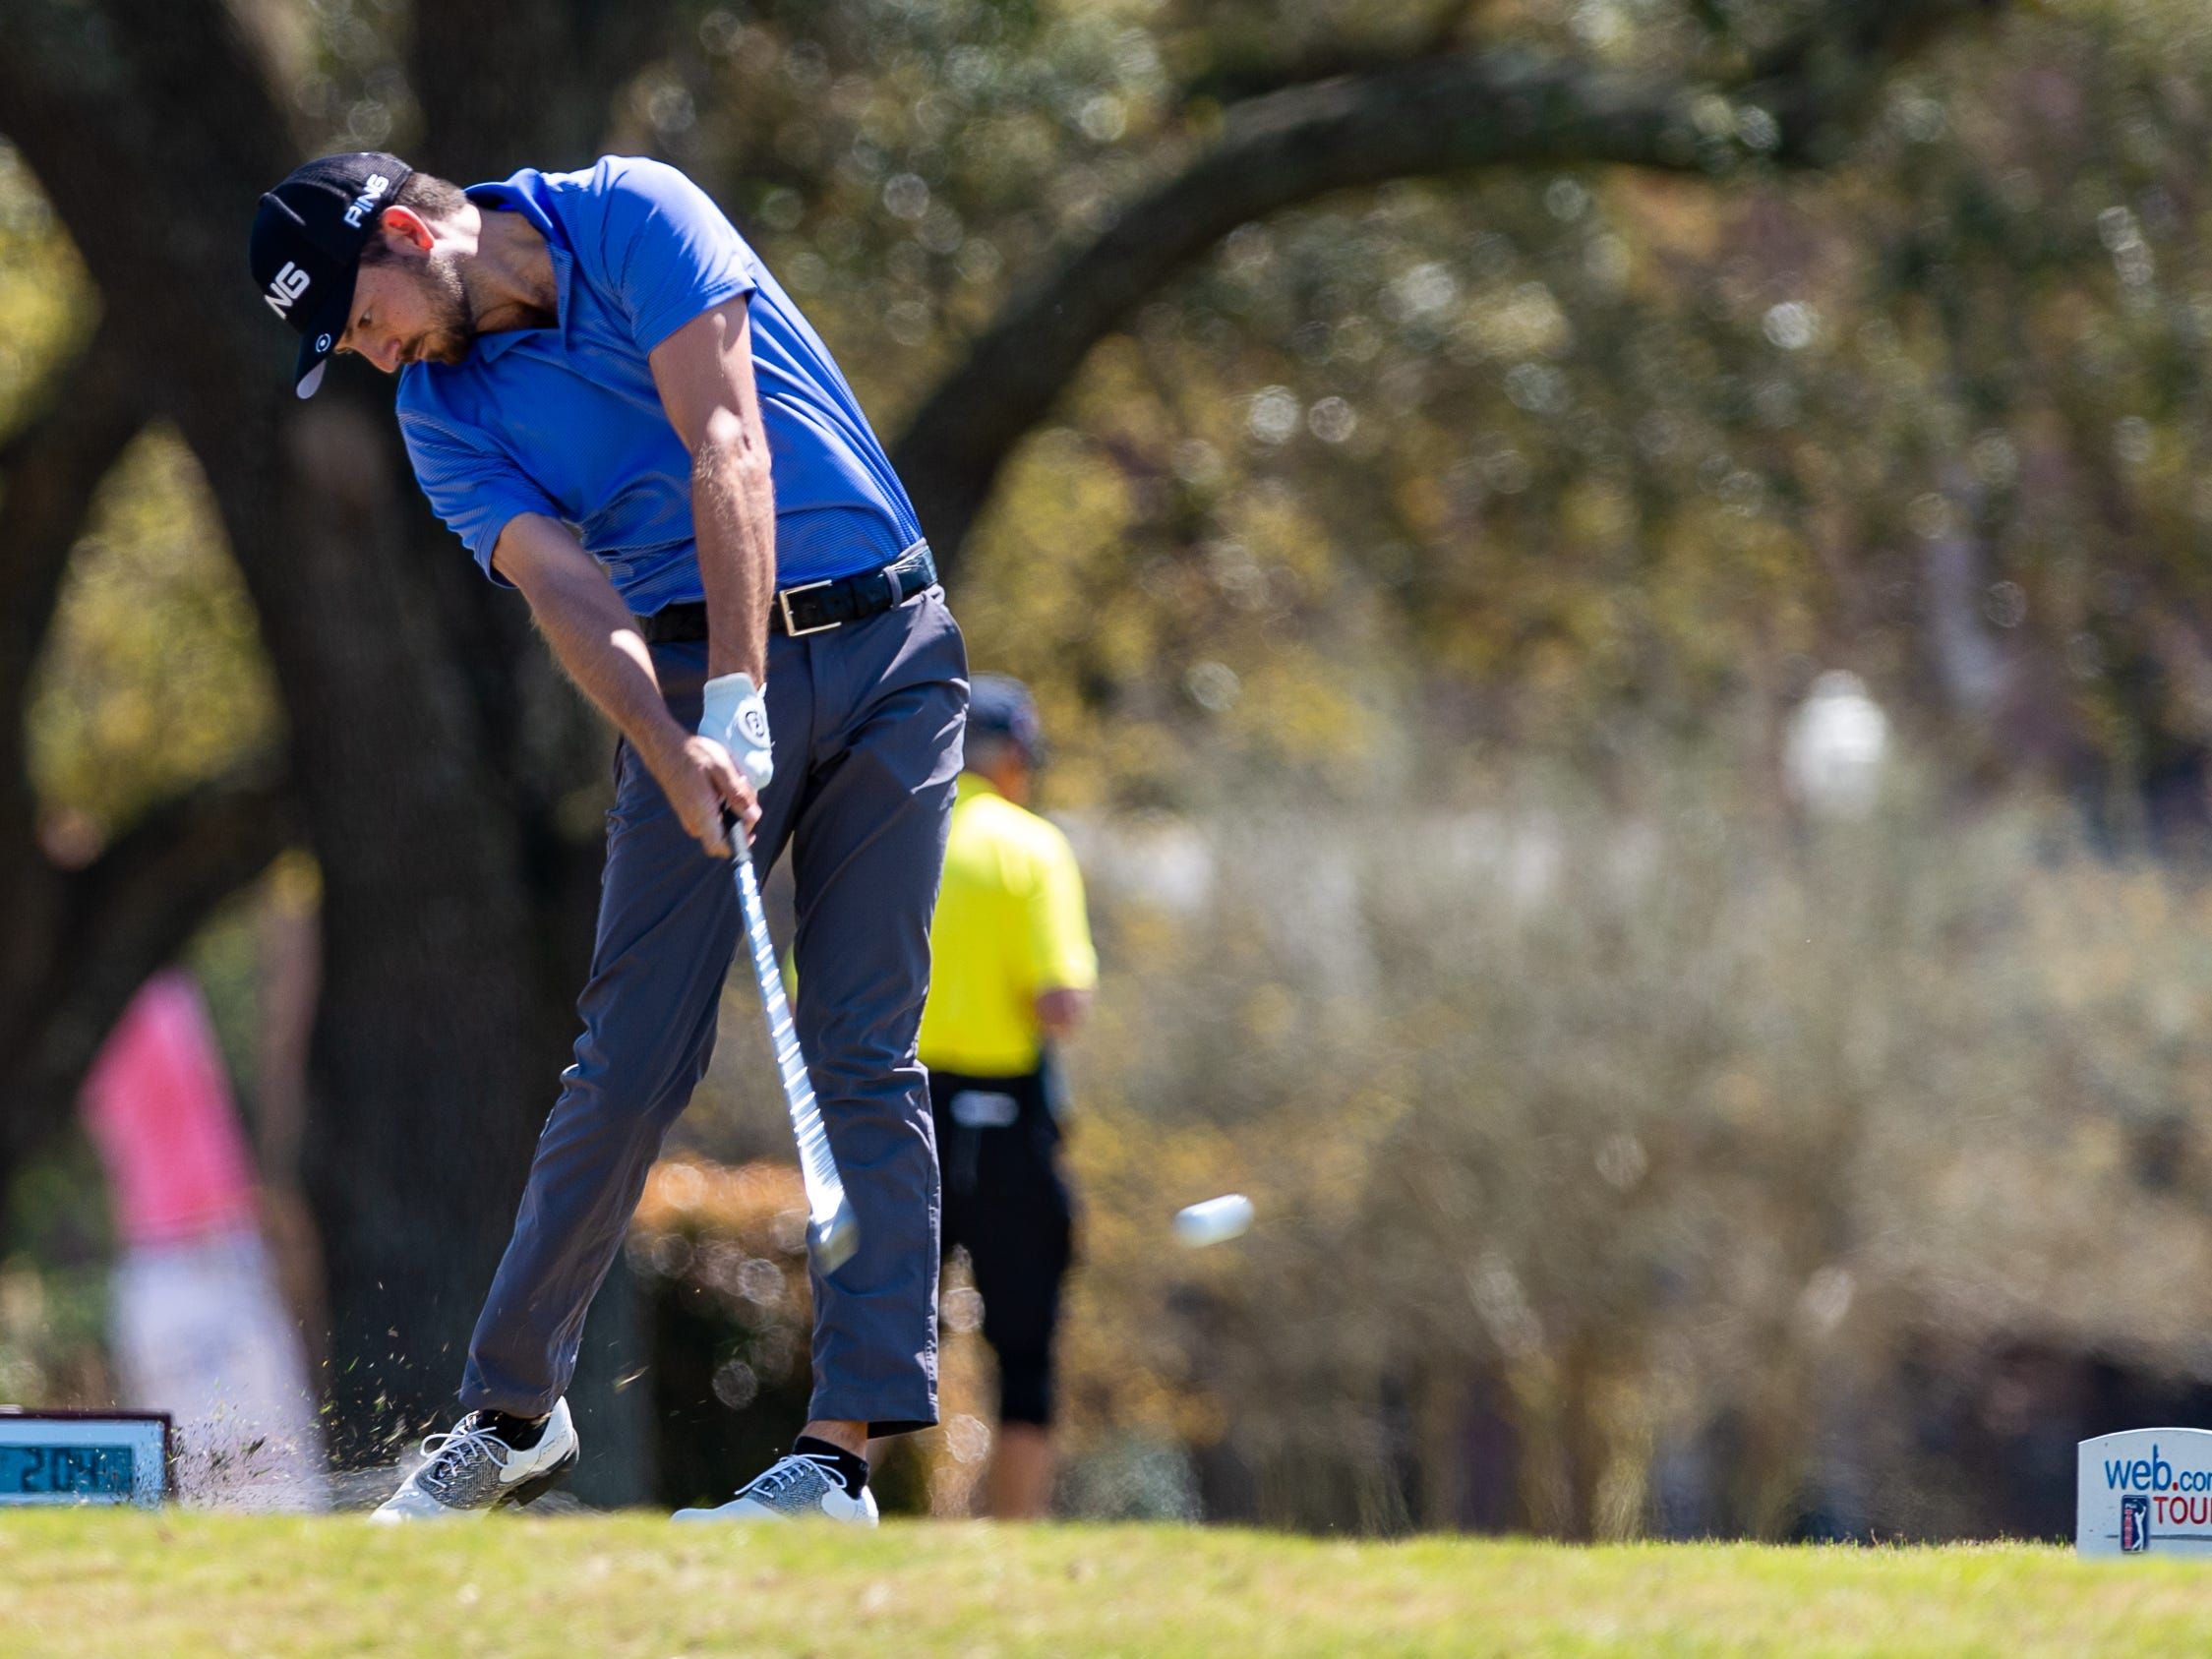 Zach Wright from Baton Rouge, LA on the tee as The Web.com Tour is in Lafayette for the 2019 Chitimacha Louisiana Open at Le Triomphe. Friday, March 22, 2019.